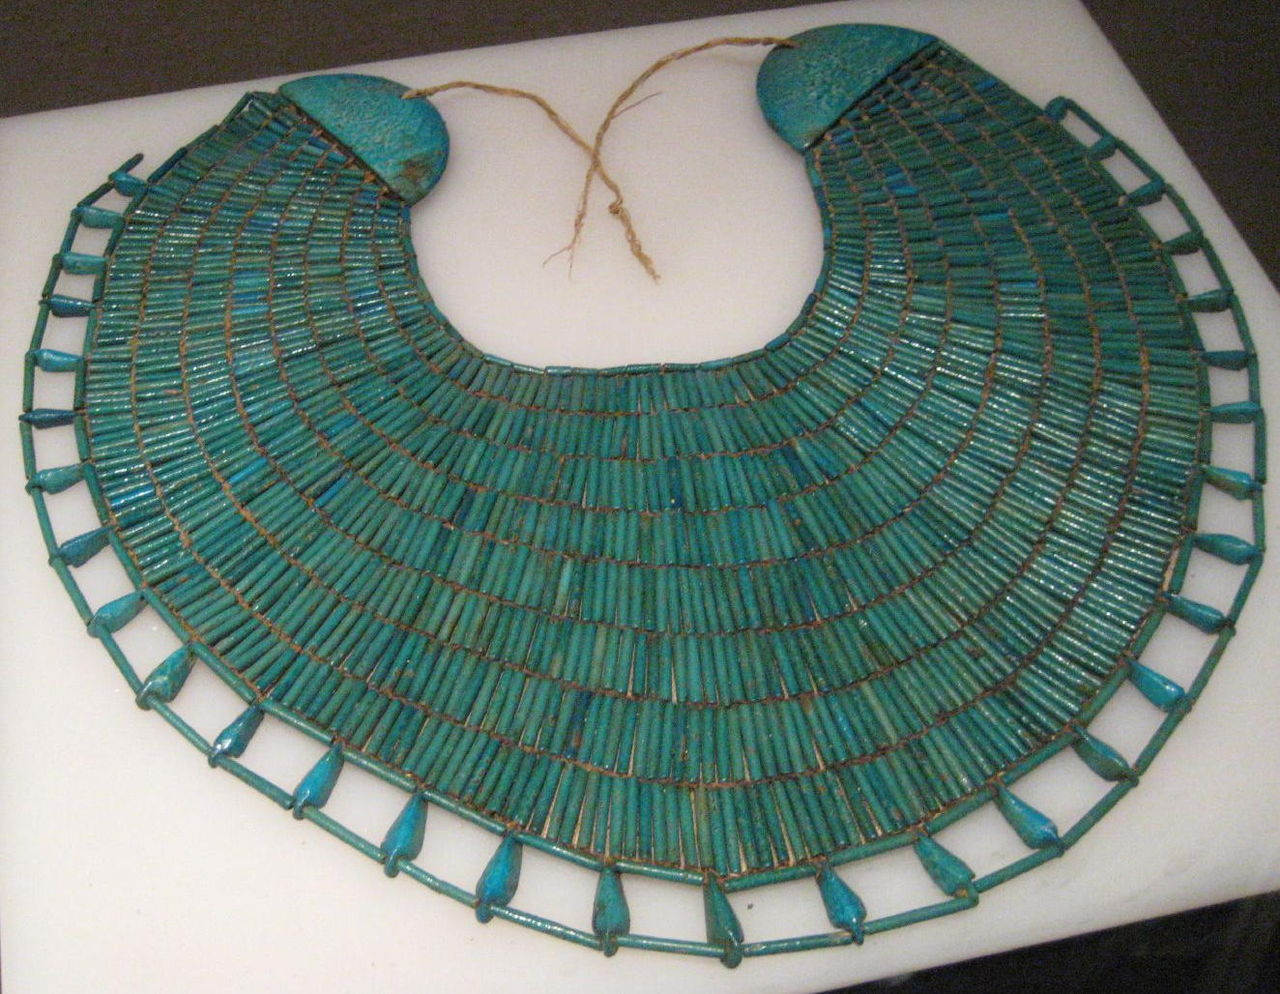 1280px-Broad_collar_necklace_of_Wah.jpg